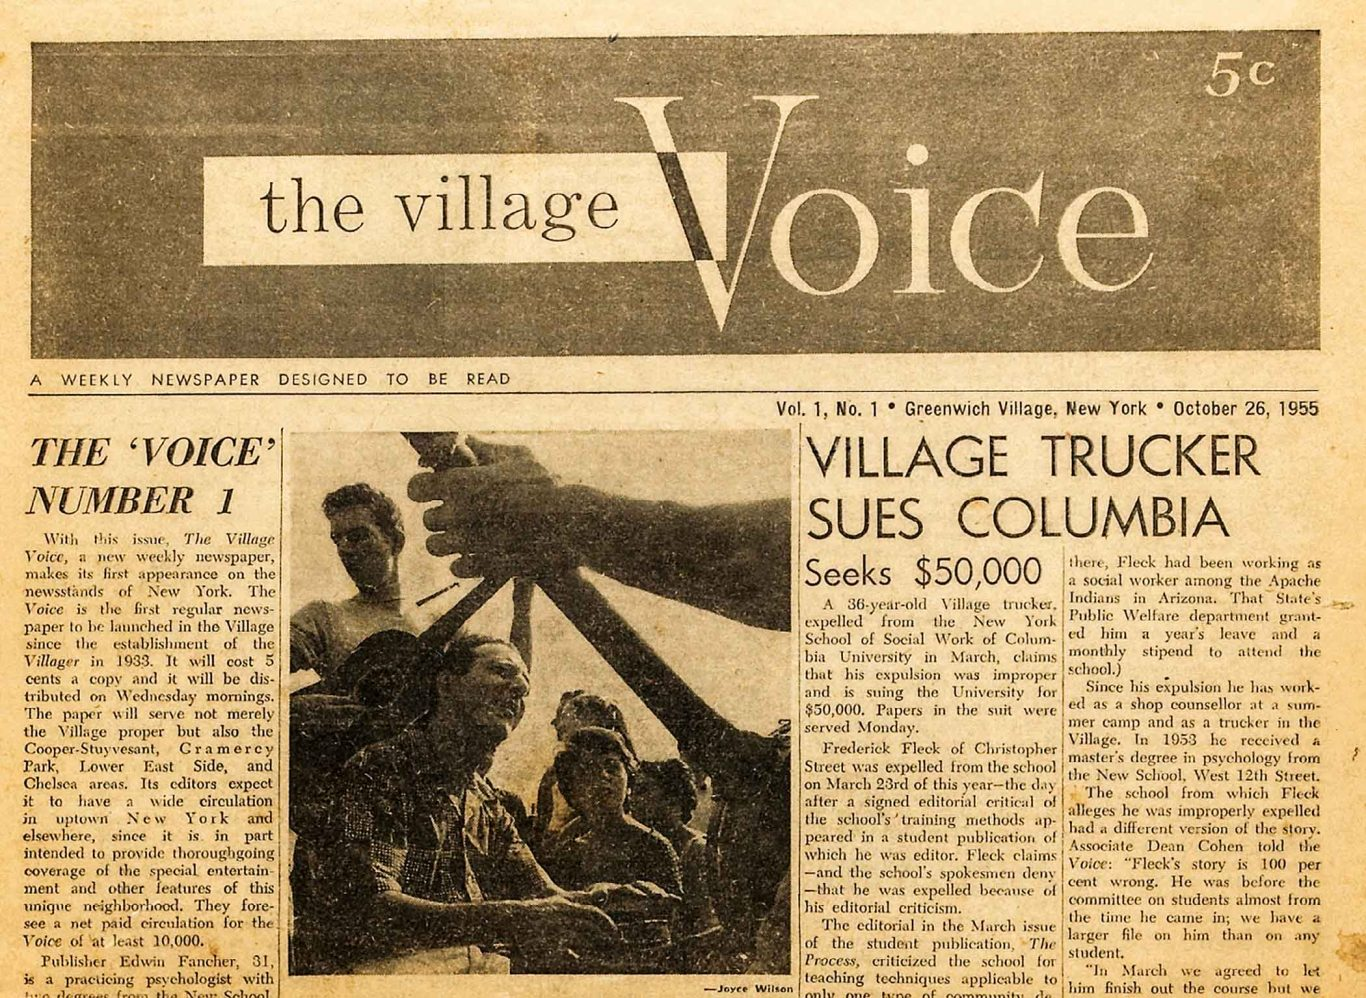 Article about reviving the Village Voice in 2021